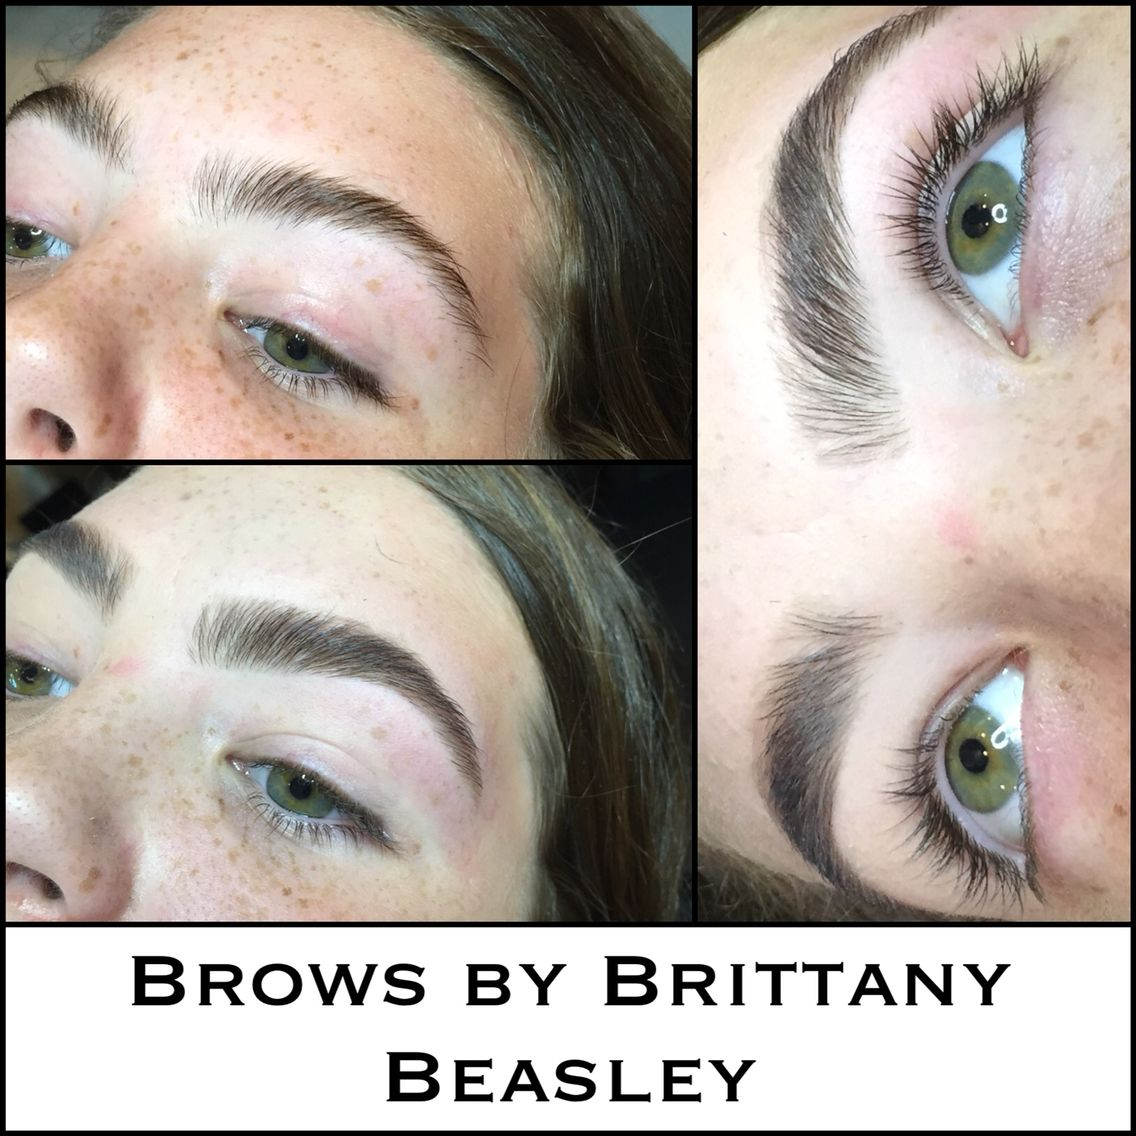 Brow shaping on this pretty girl inside and out!!! She got the works: wax, tint, trim, and fine-tune tweezing. Such a beauty! #browshaping #browgame #browsbybrittany #brows